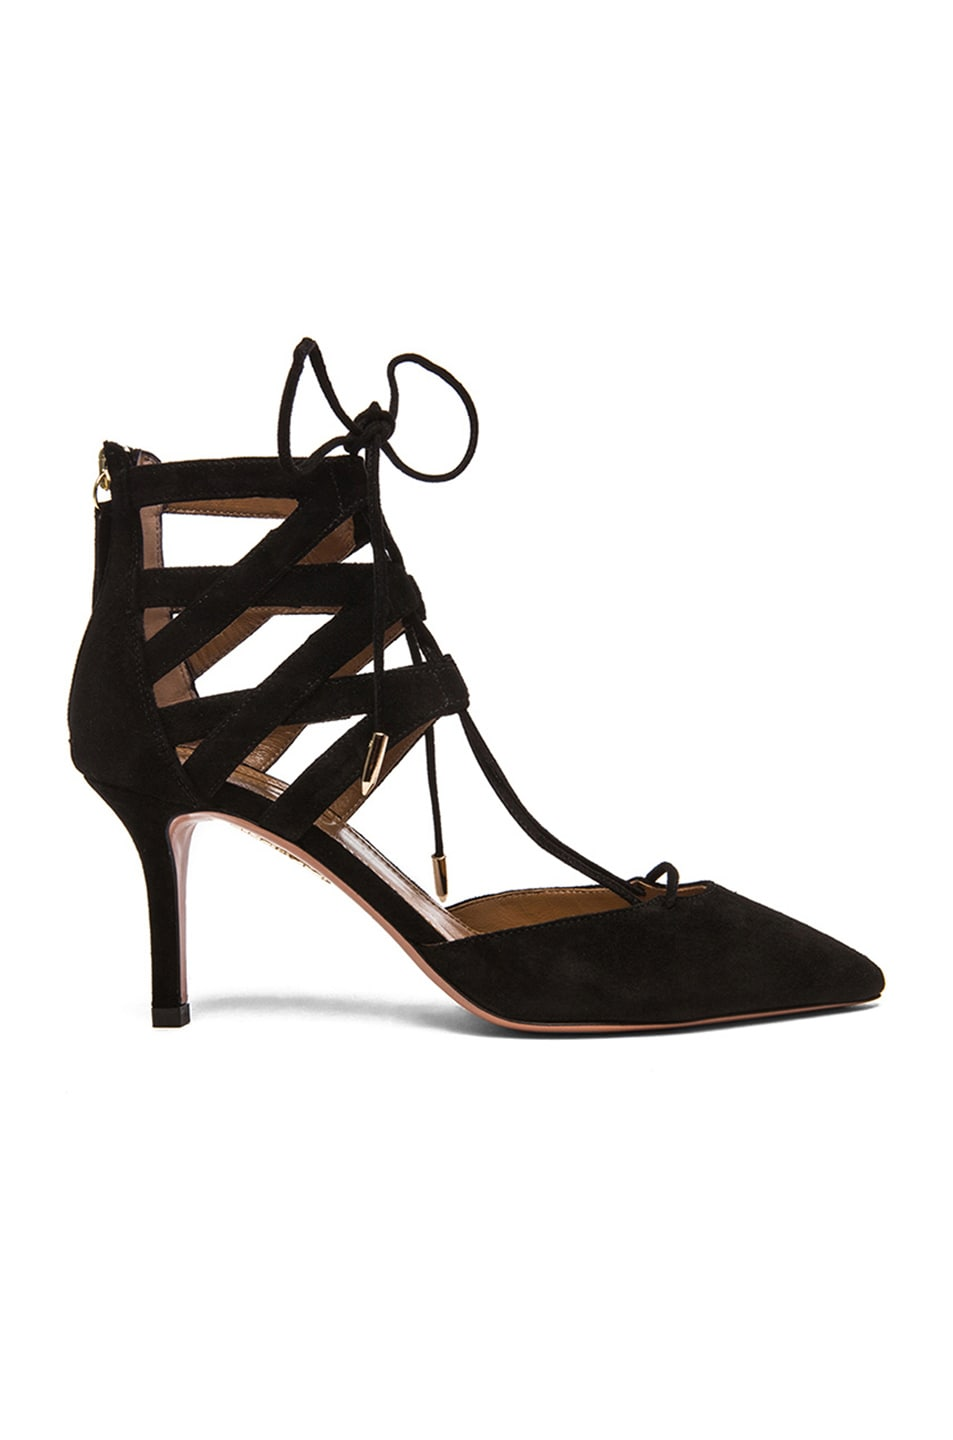 Image 1 of Aquazzura Belgravia Suede Lace Up Pumps in Black